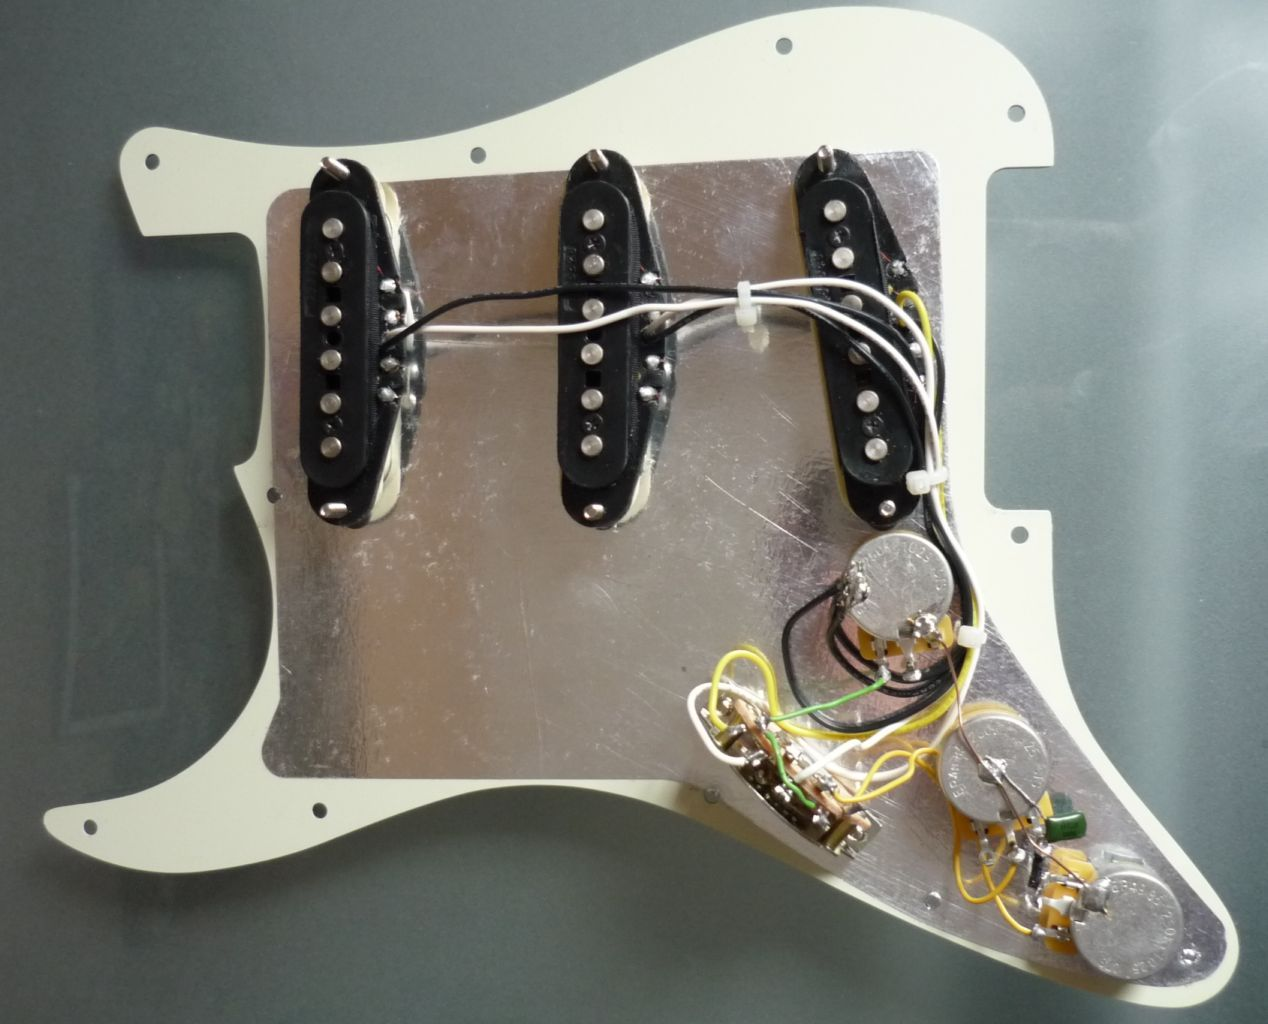 fender hot noiseless strat pickups 224941?resize\\\\\=665%2C537\\\\\&ssl\\\\\=1 intermatic ej500 wiring diagram on intermatic download wirning  at fashall.co